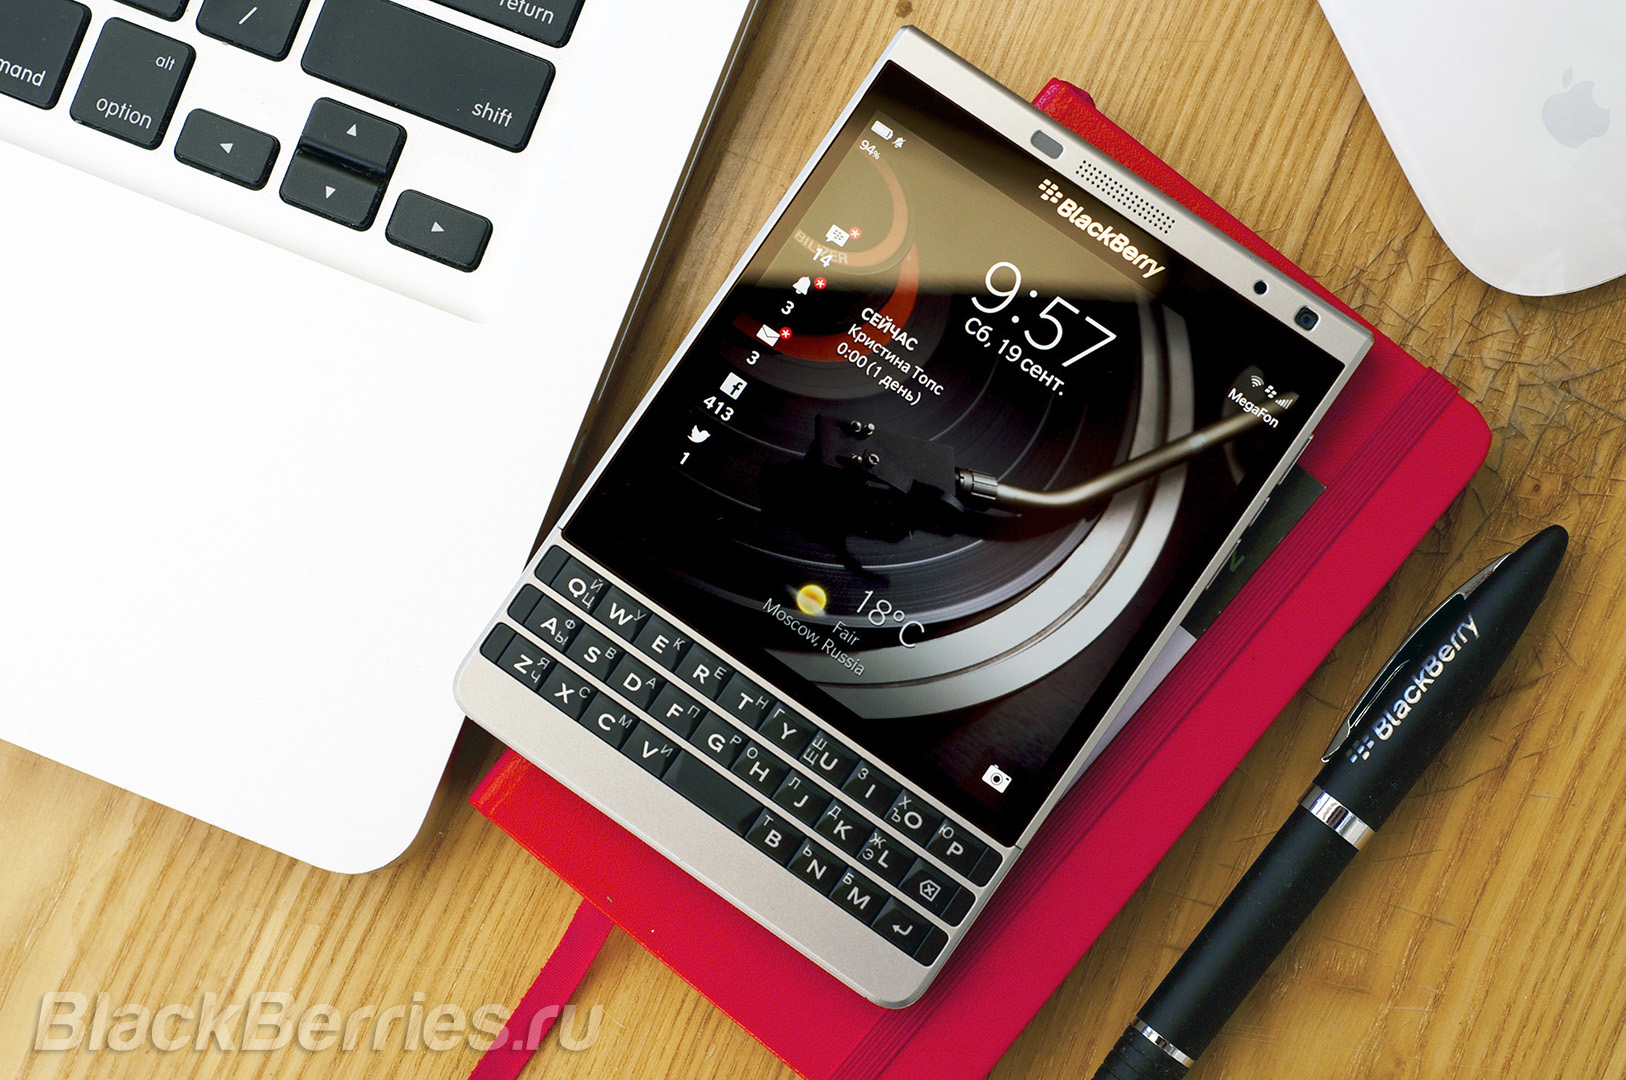 BlackBerry-Passport-SE-Apps-19-09-12